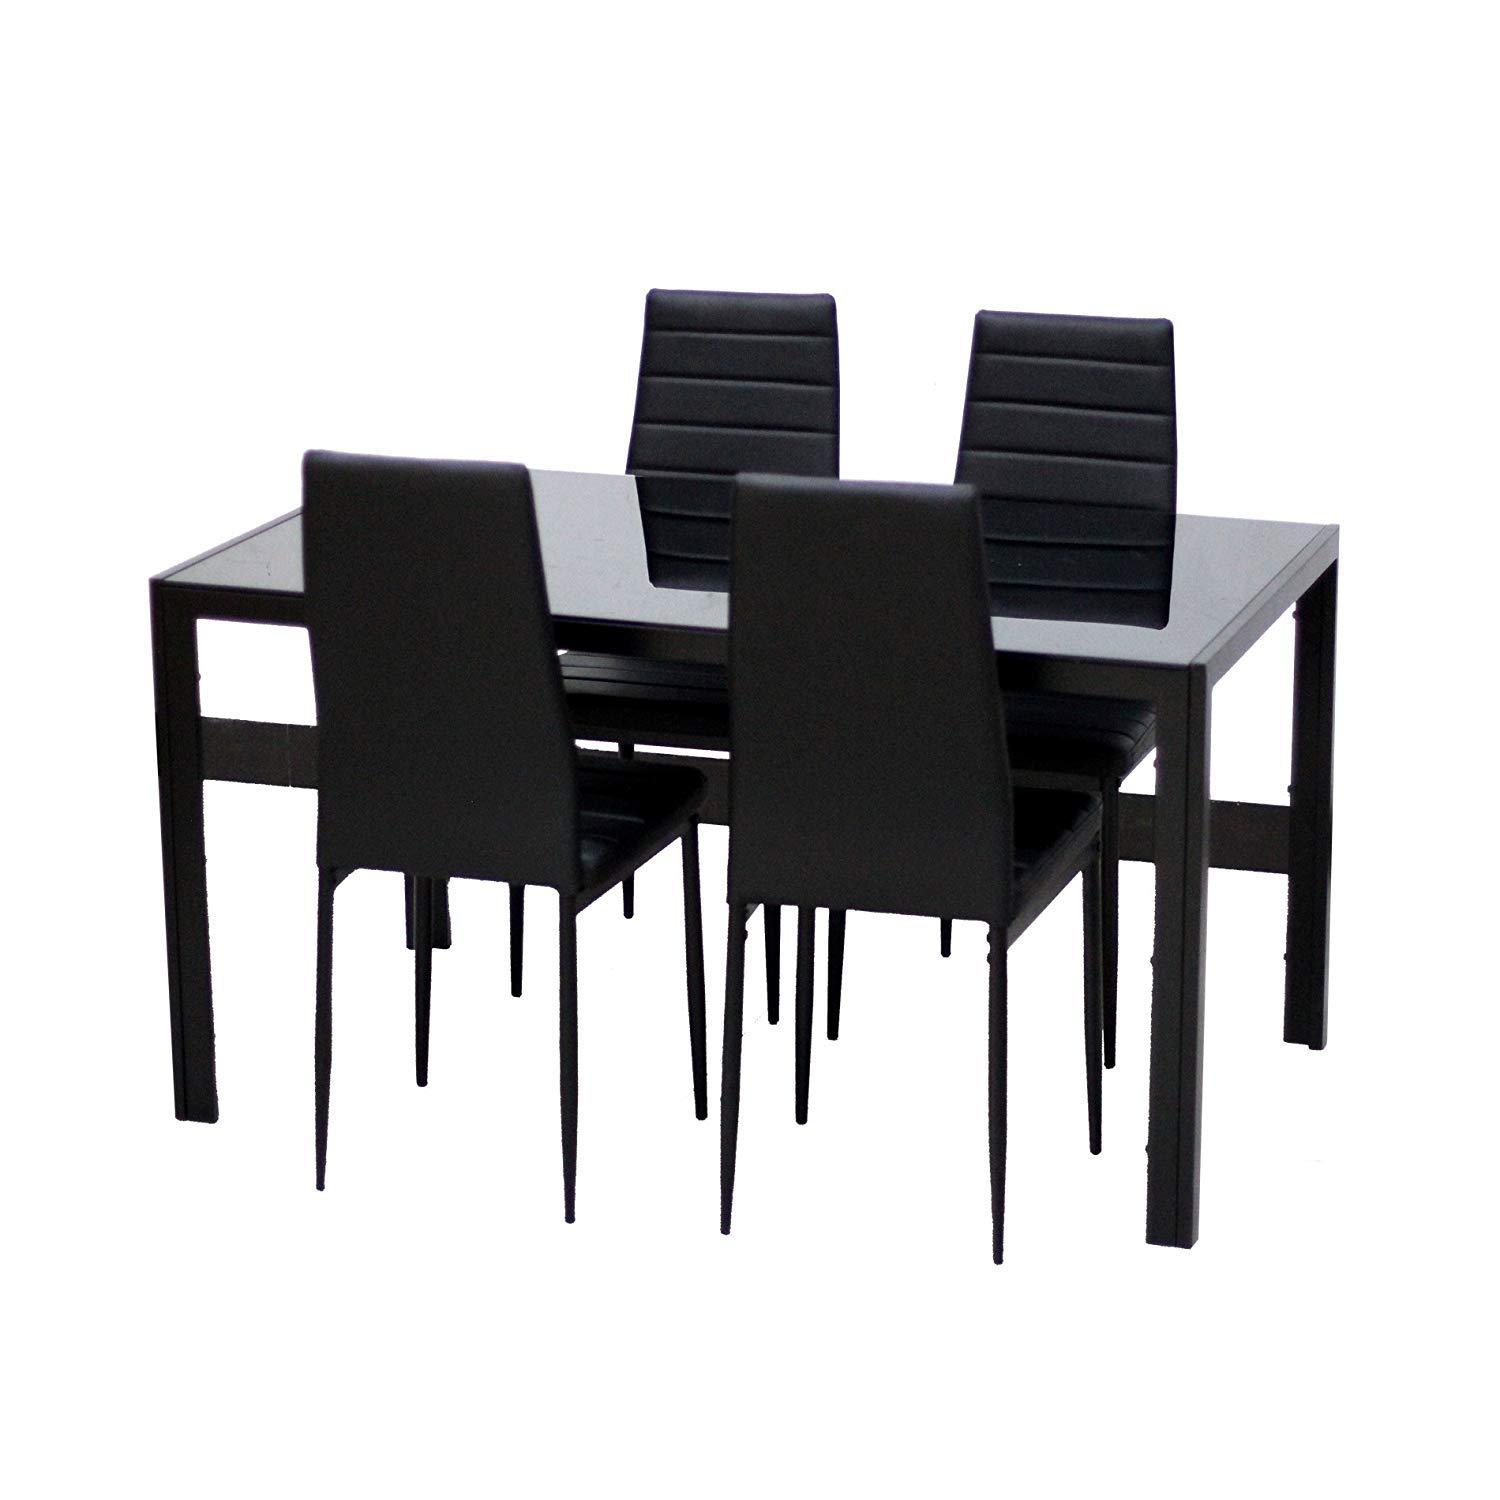 EBS® Black Glass Dining Table and 4 Chairs Dining Room Furniture Set - Modern Design Faux Leather EBS My Furniture